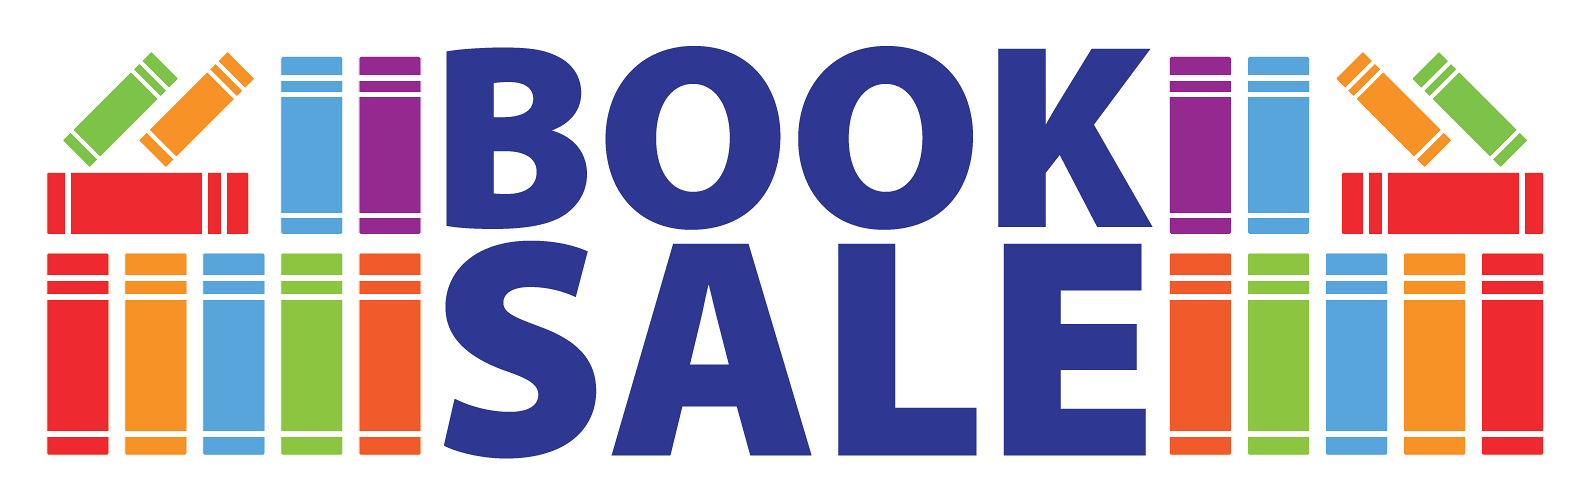 While it's a mini-sale, there are so many great books, you will have no trouble finding lovely gift selections for family and friends or a special book for yourself. Nov 29 - Dec 2, During Library Open Hours.